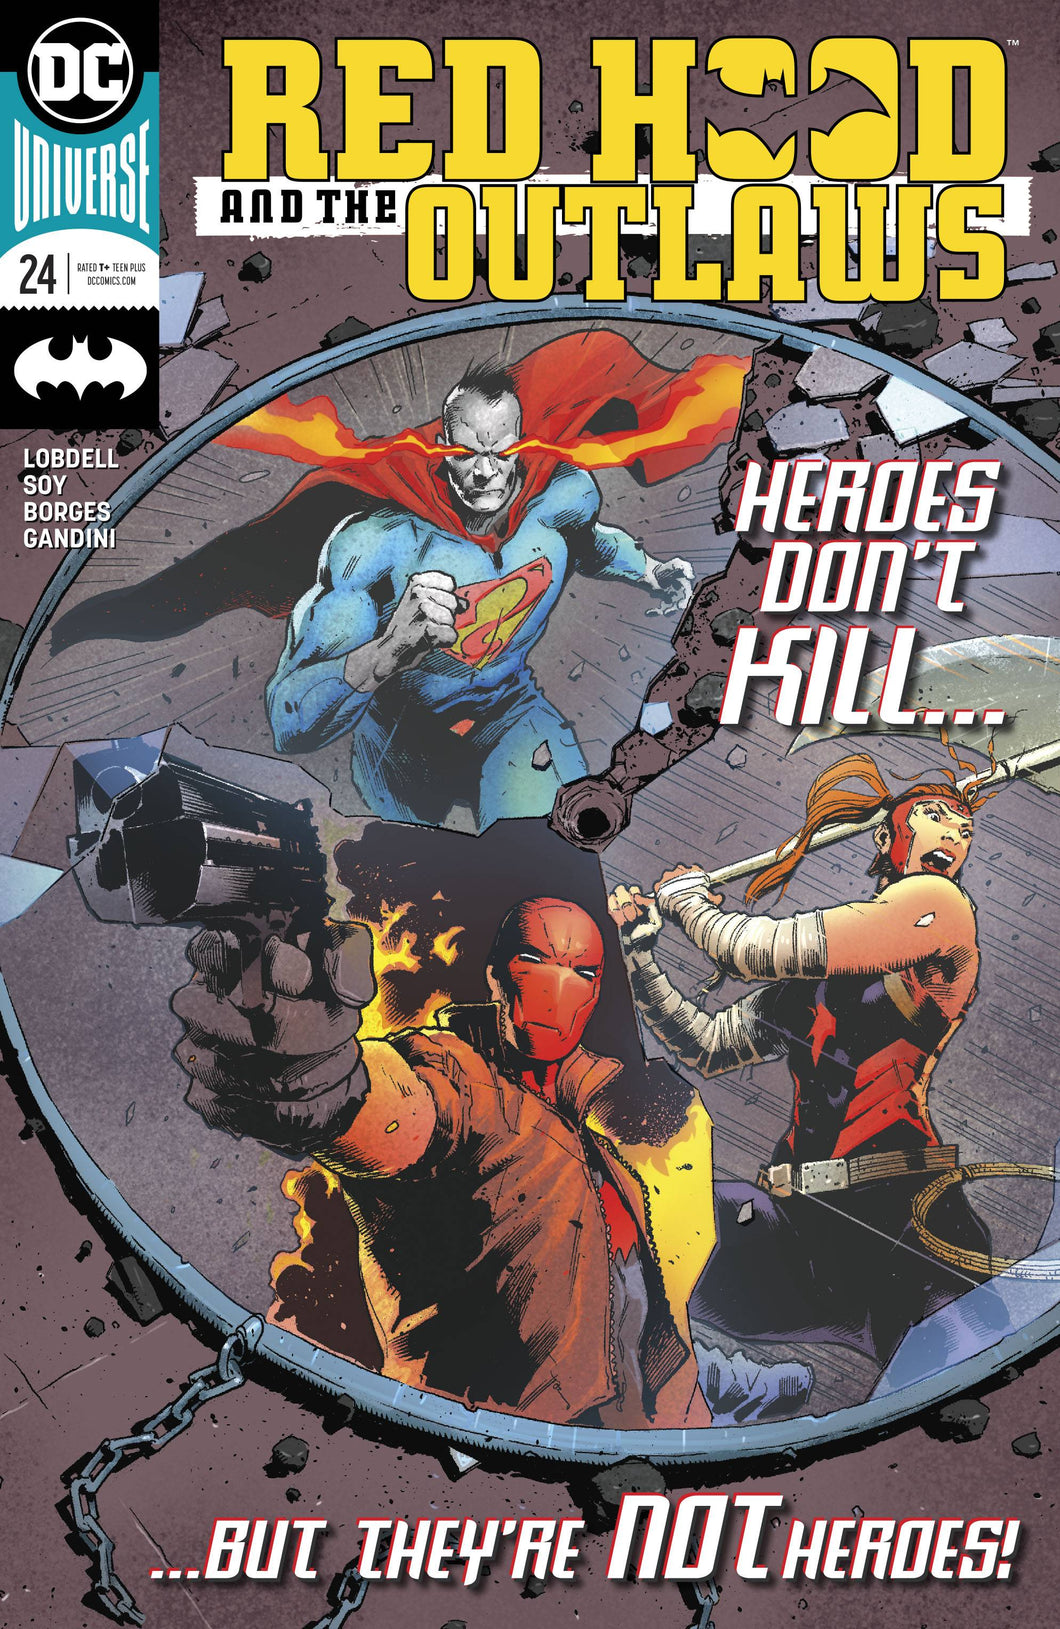 RED HOOD AND THE OUTLAWS #24 (07/11/2018)